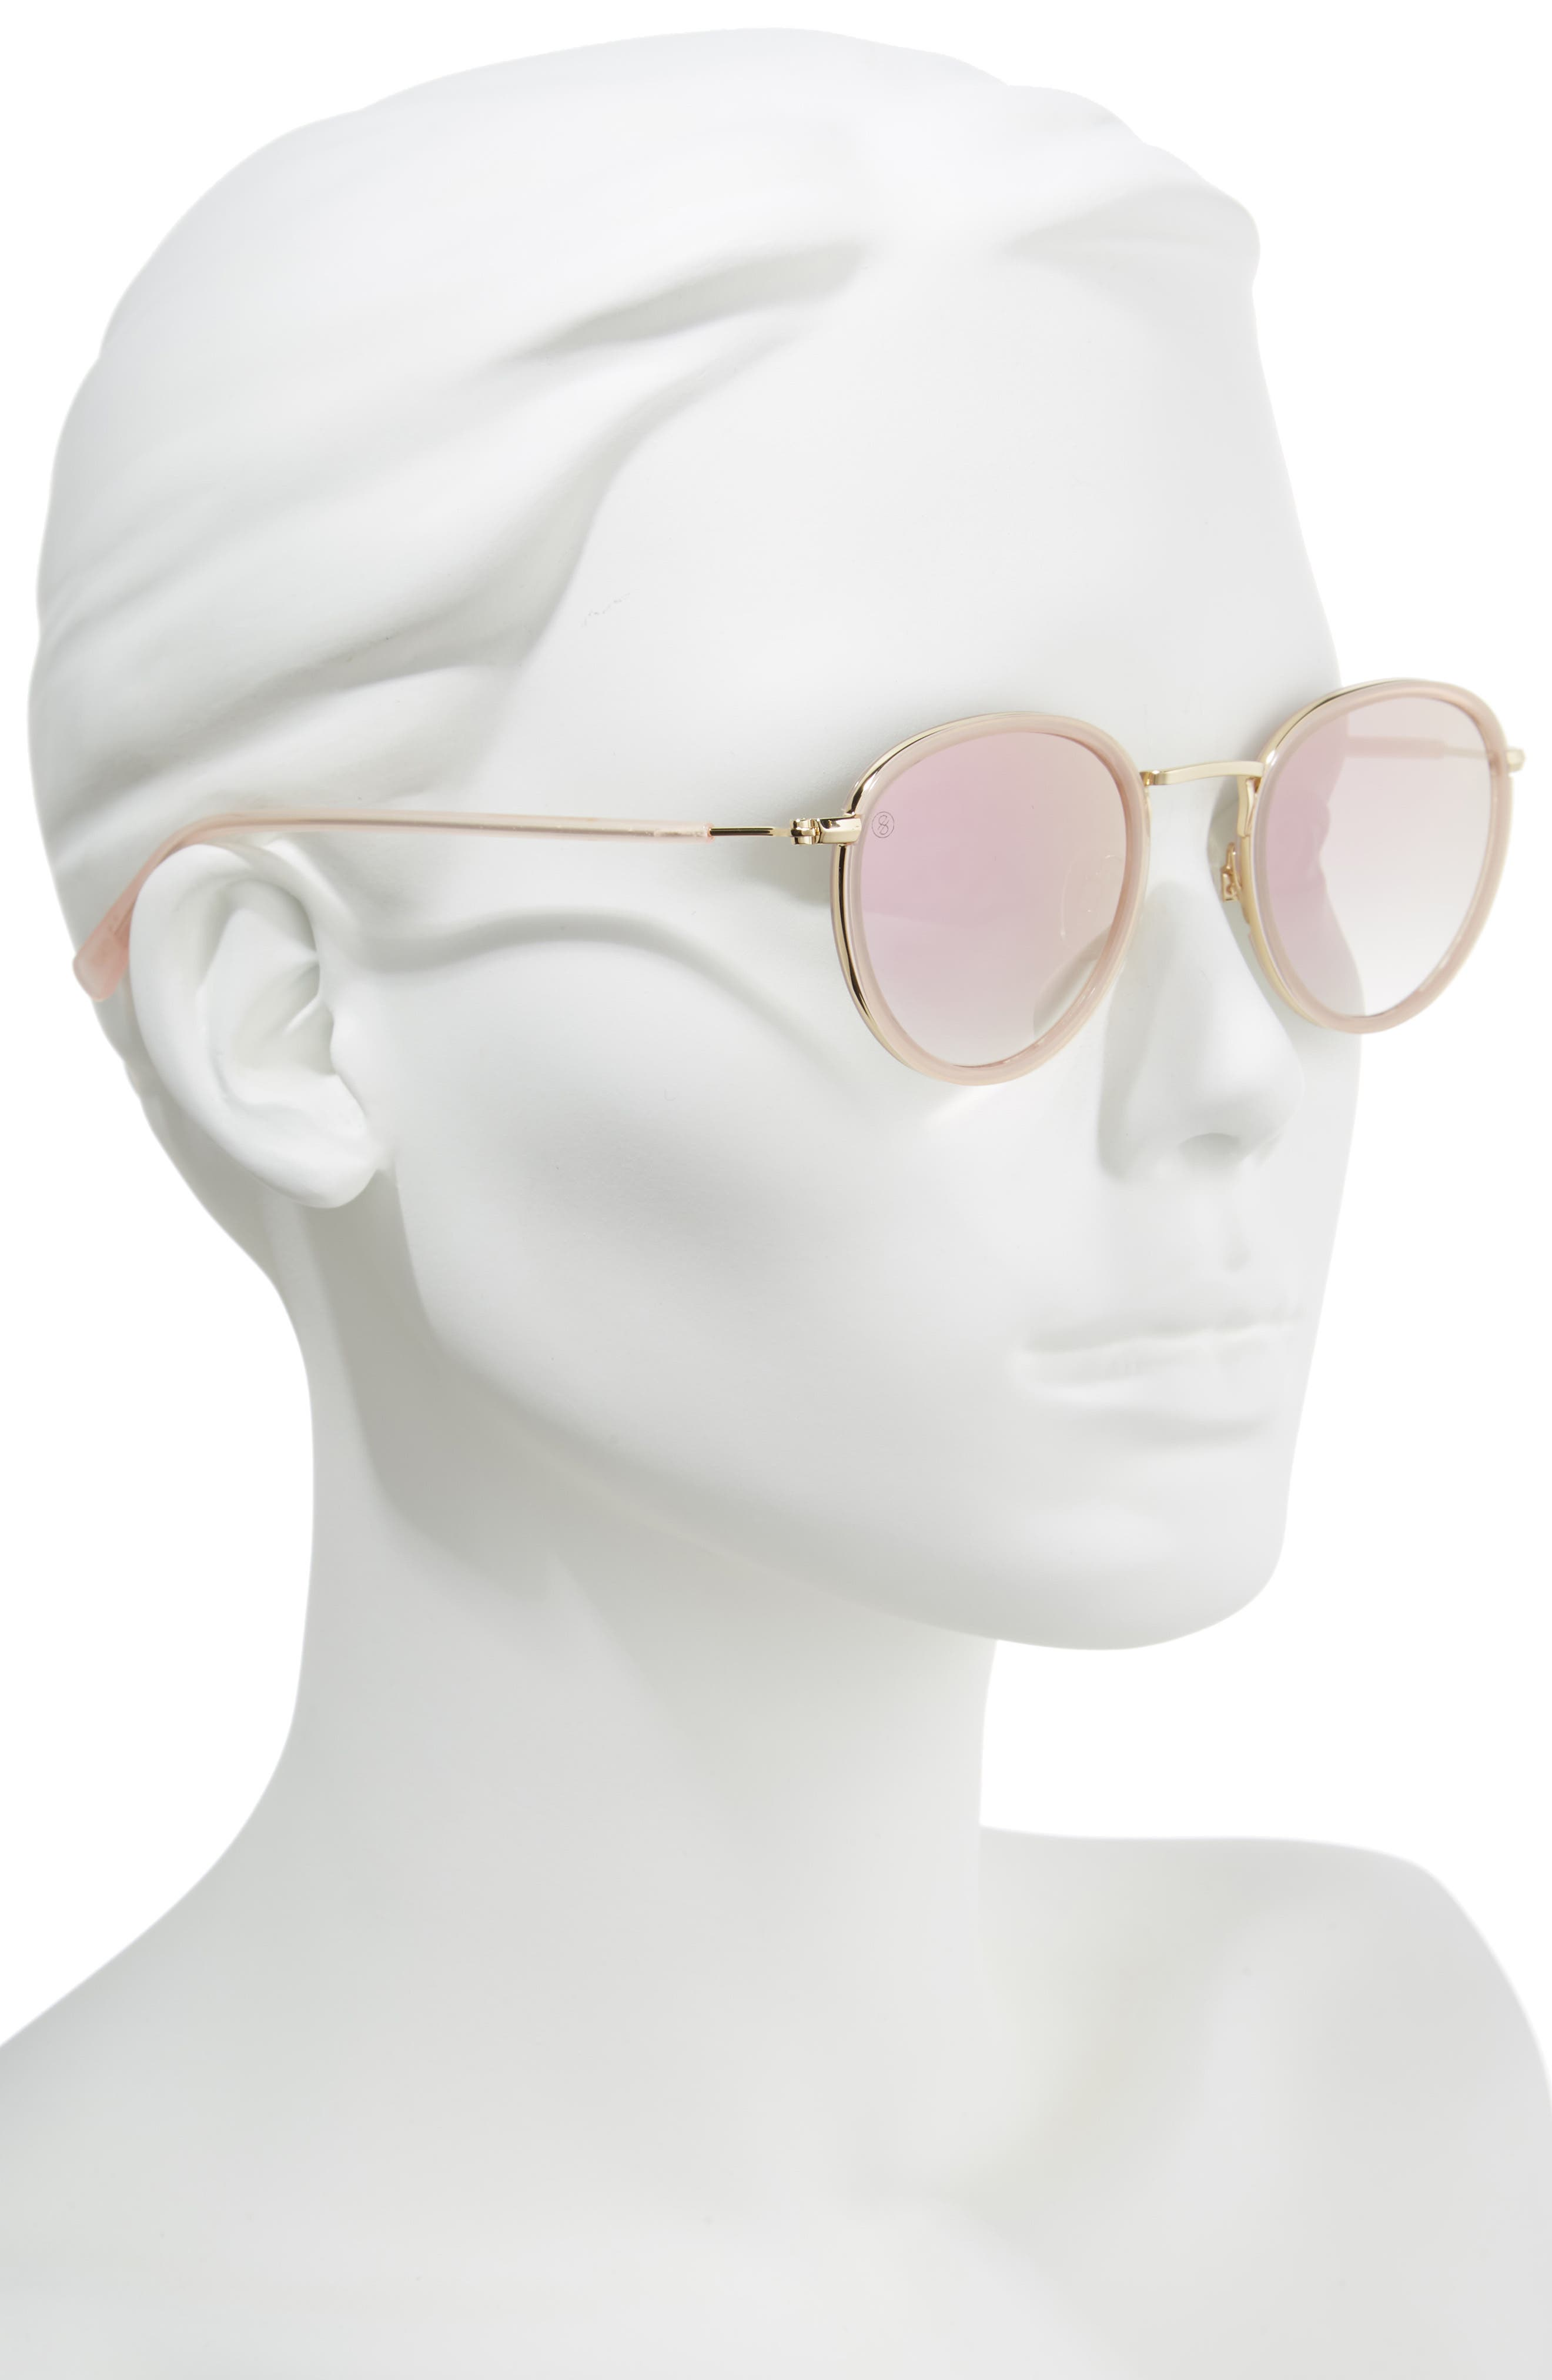 D'BLANC Prologue 48mm Round Sunglasses,                             Alternate thumbnail 2, color,                             Blush/ Rose Flash